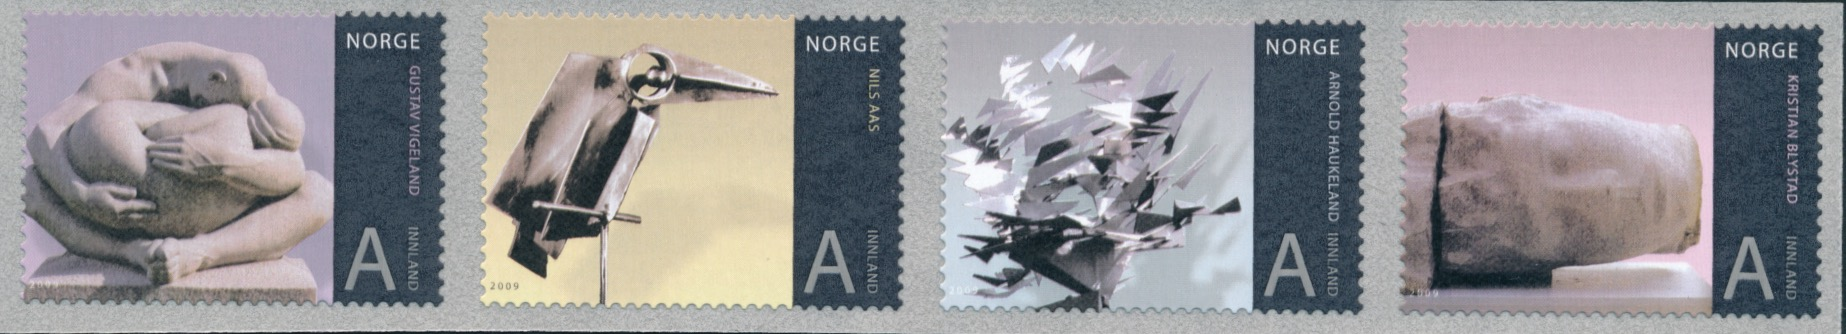 https://www.norstamps.com/content/images/stamps/norway/1735-38.jpeg